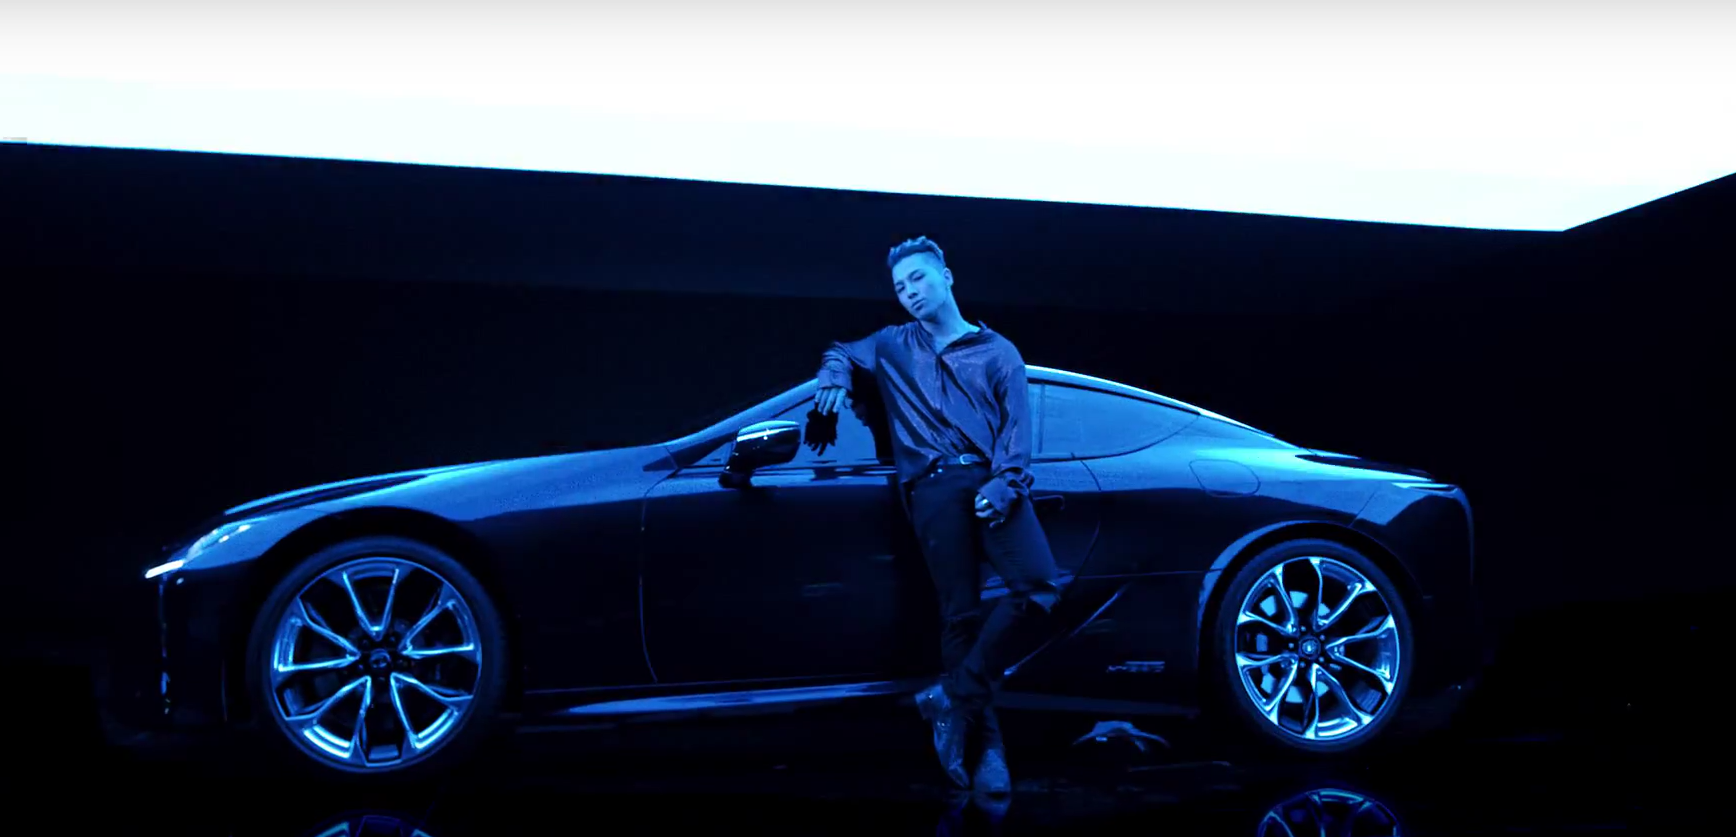 Taeyang Teams Up With Lexus On U201cSo Goodu201d Ad MV, Where He Tries To Fuck A Car